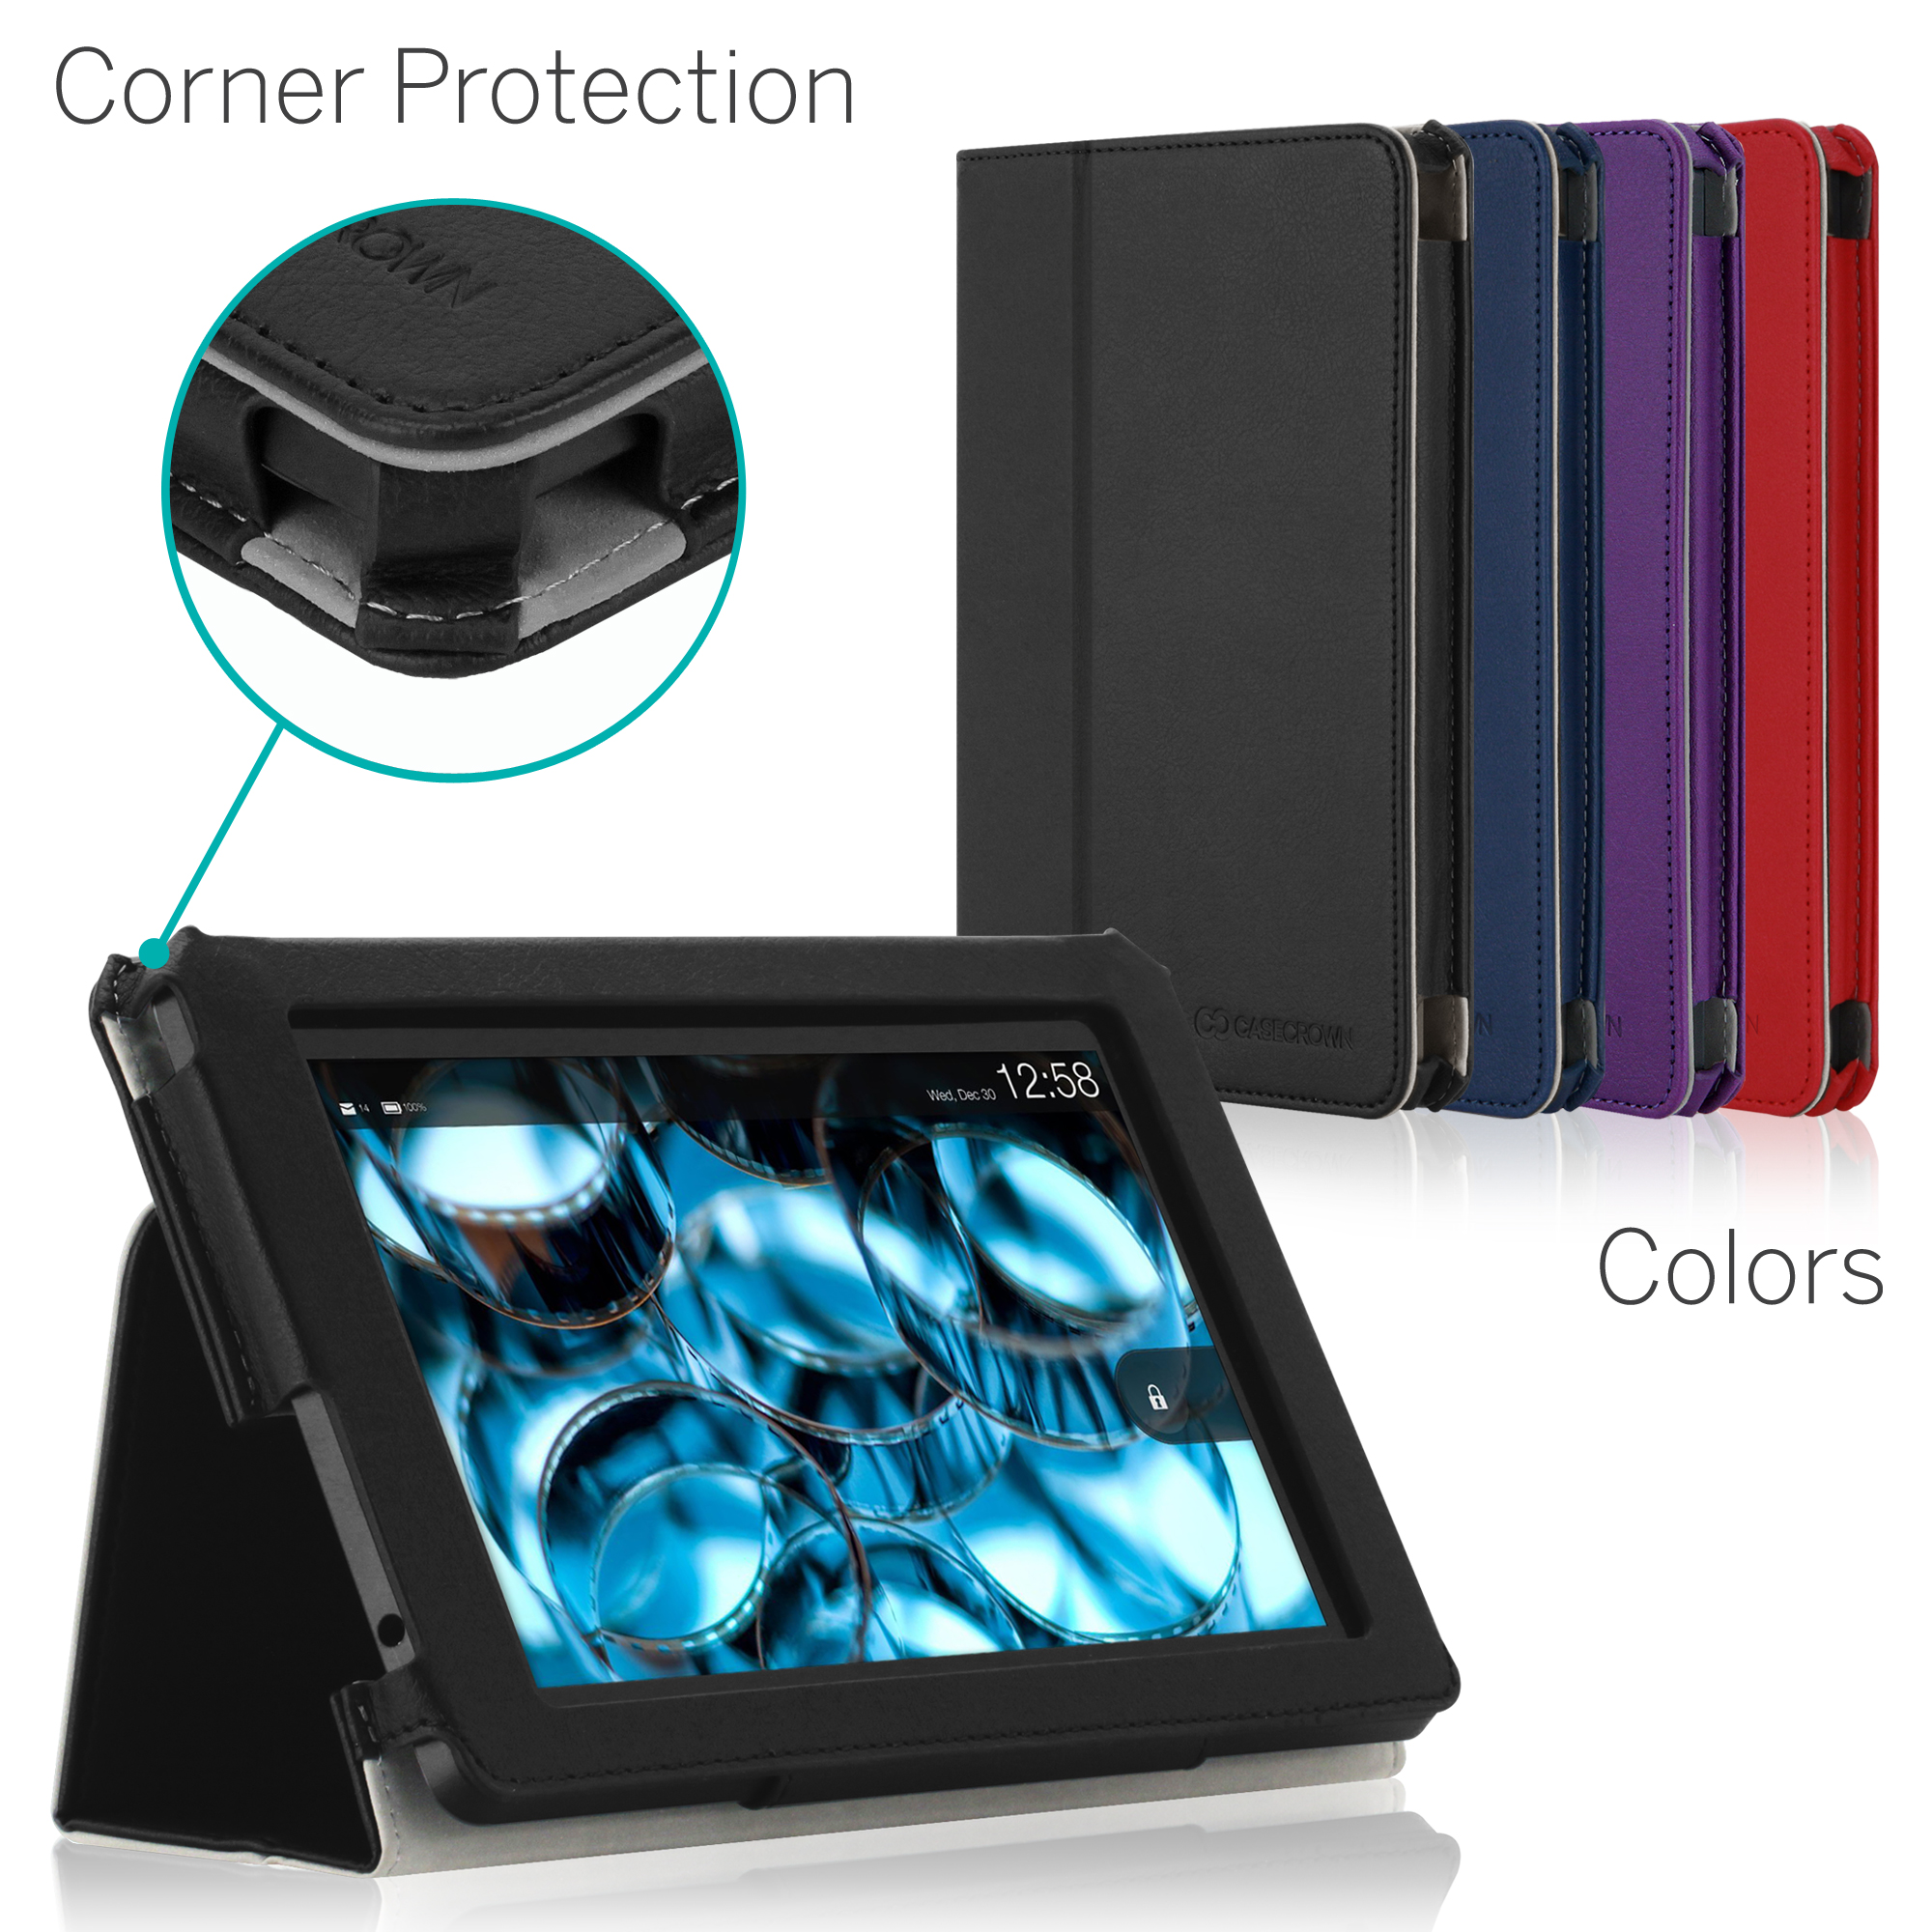 CaseCrown Bold Standby Pro Case for 2013 All-New Amazon Kindle Fire HD 7 Inch Tablet (NOT for 2012 Kindle Fire HD 7)